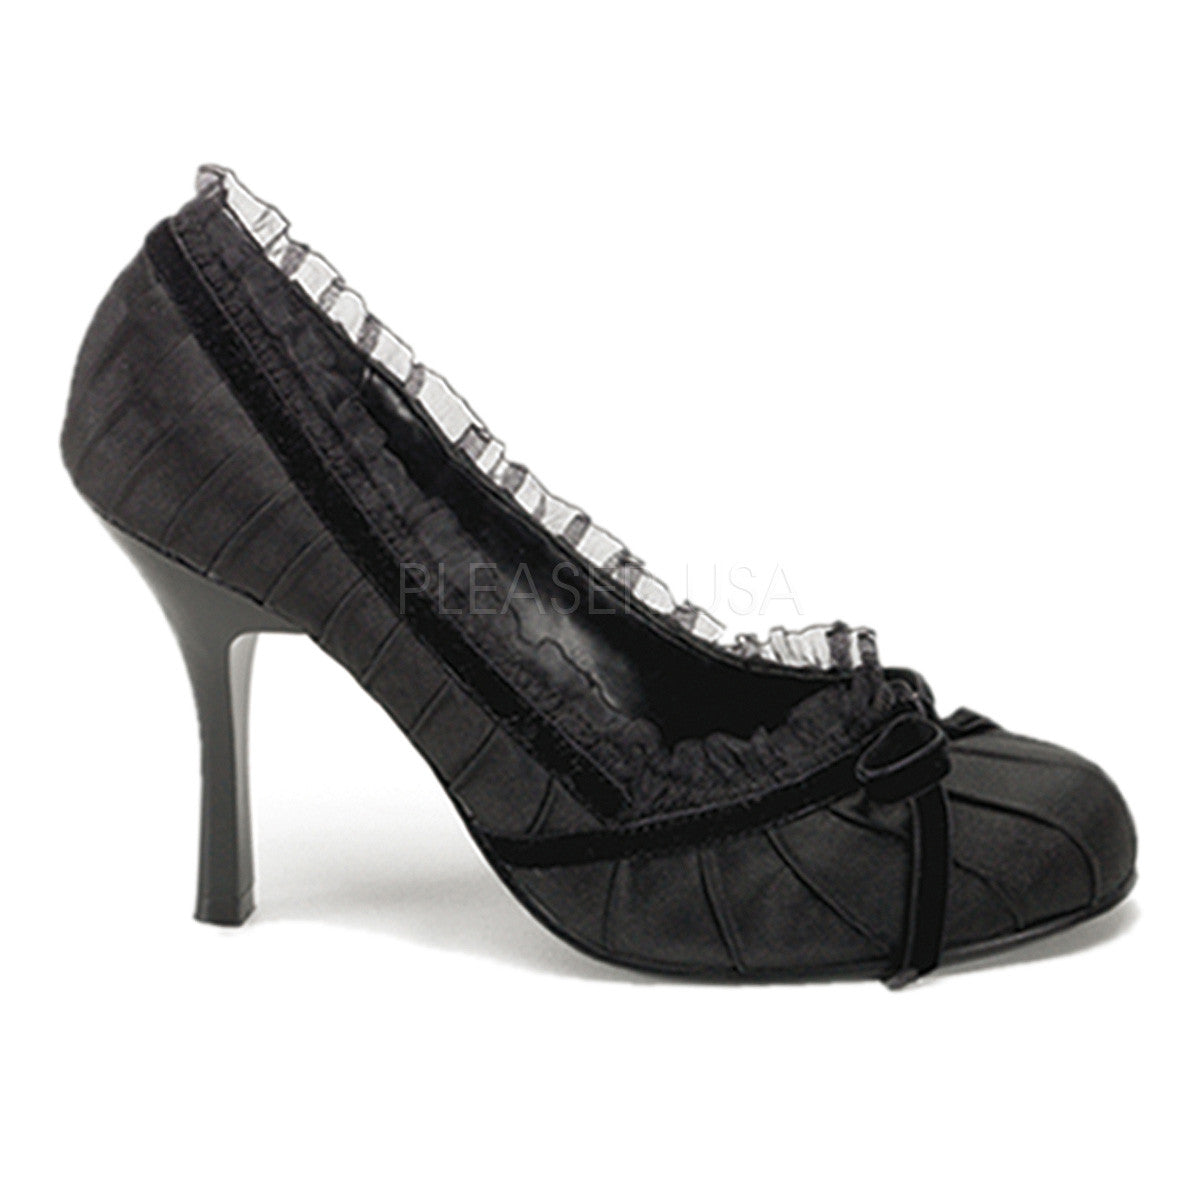 "1/2"" Heel, Blk Satin Pleated Girlie Pump"